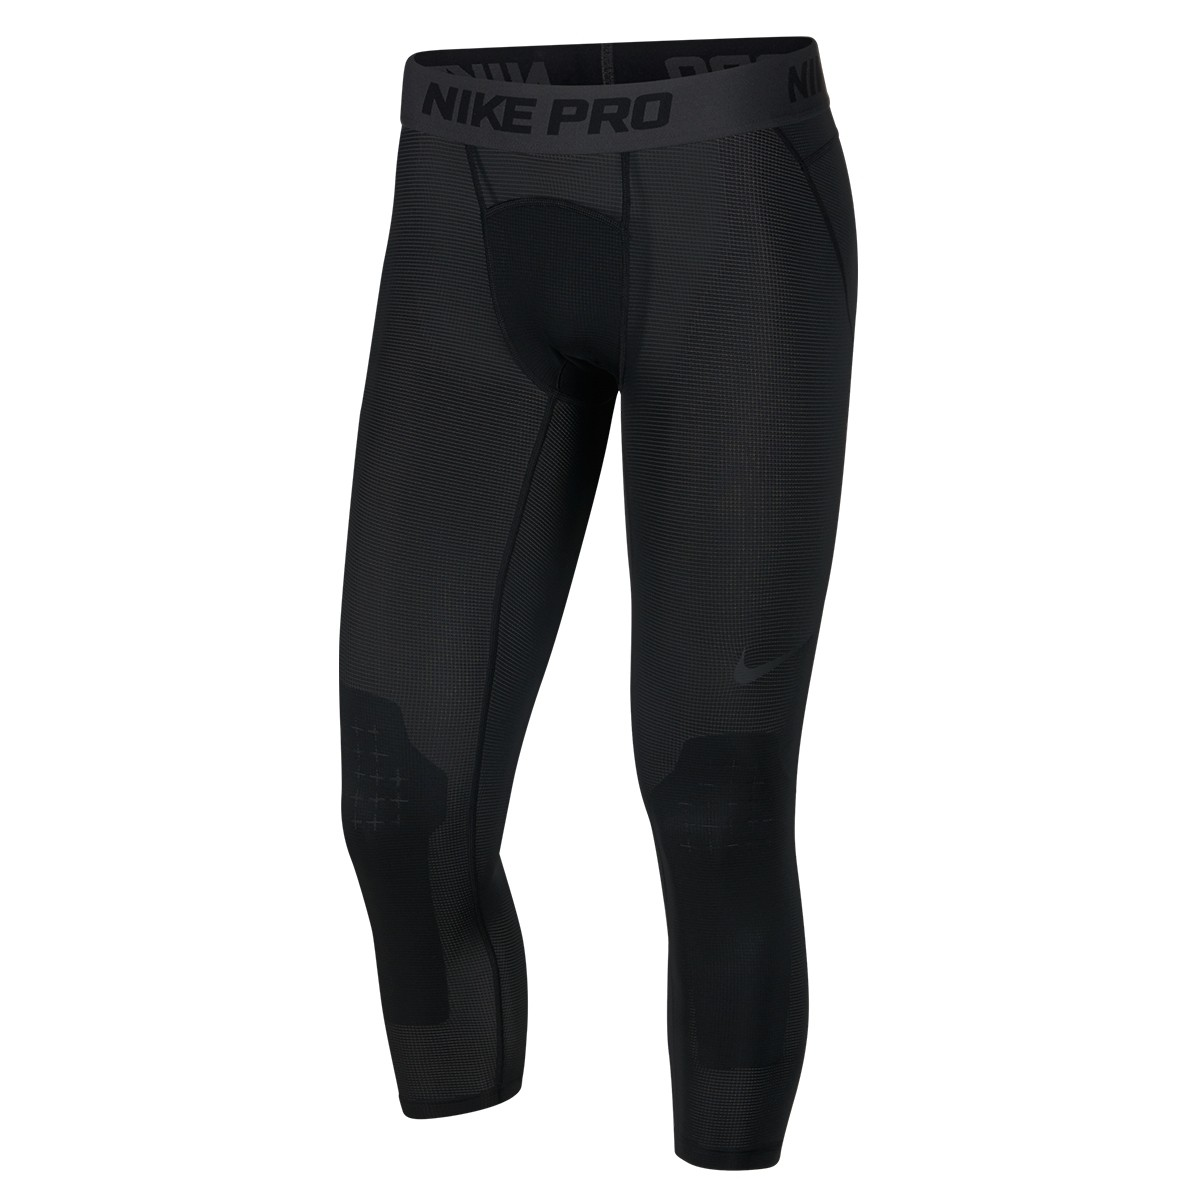 Nike Pro Men's 3/4 Basketball Tights 'Black'